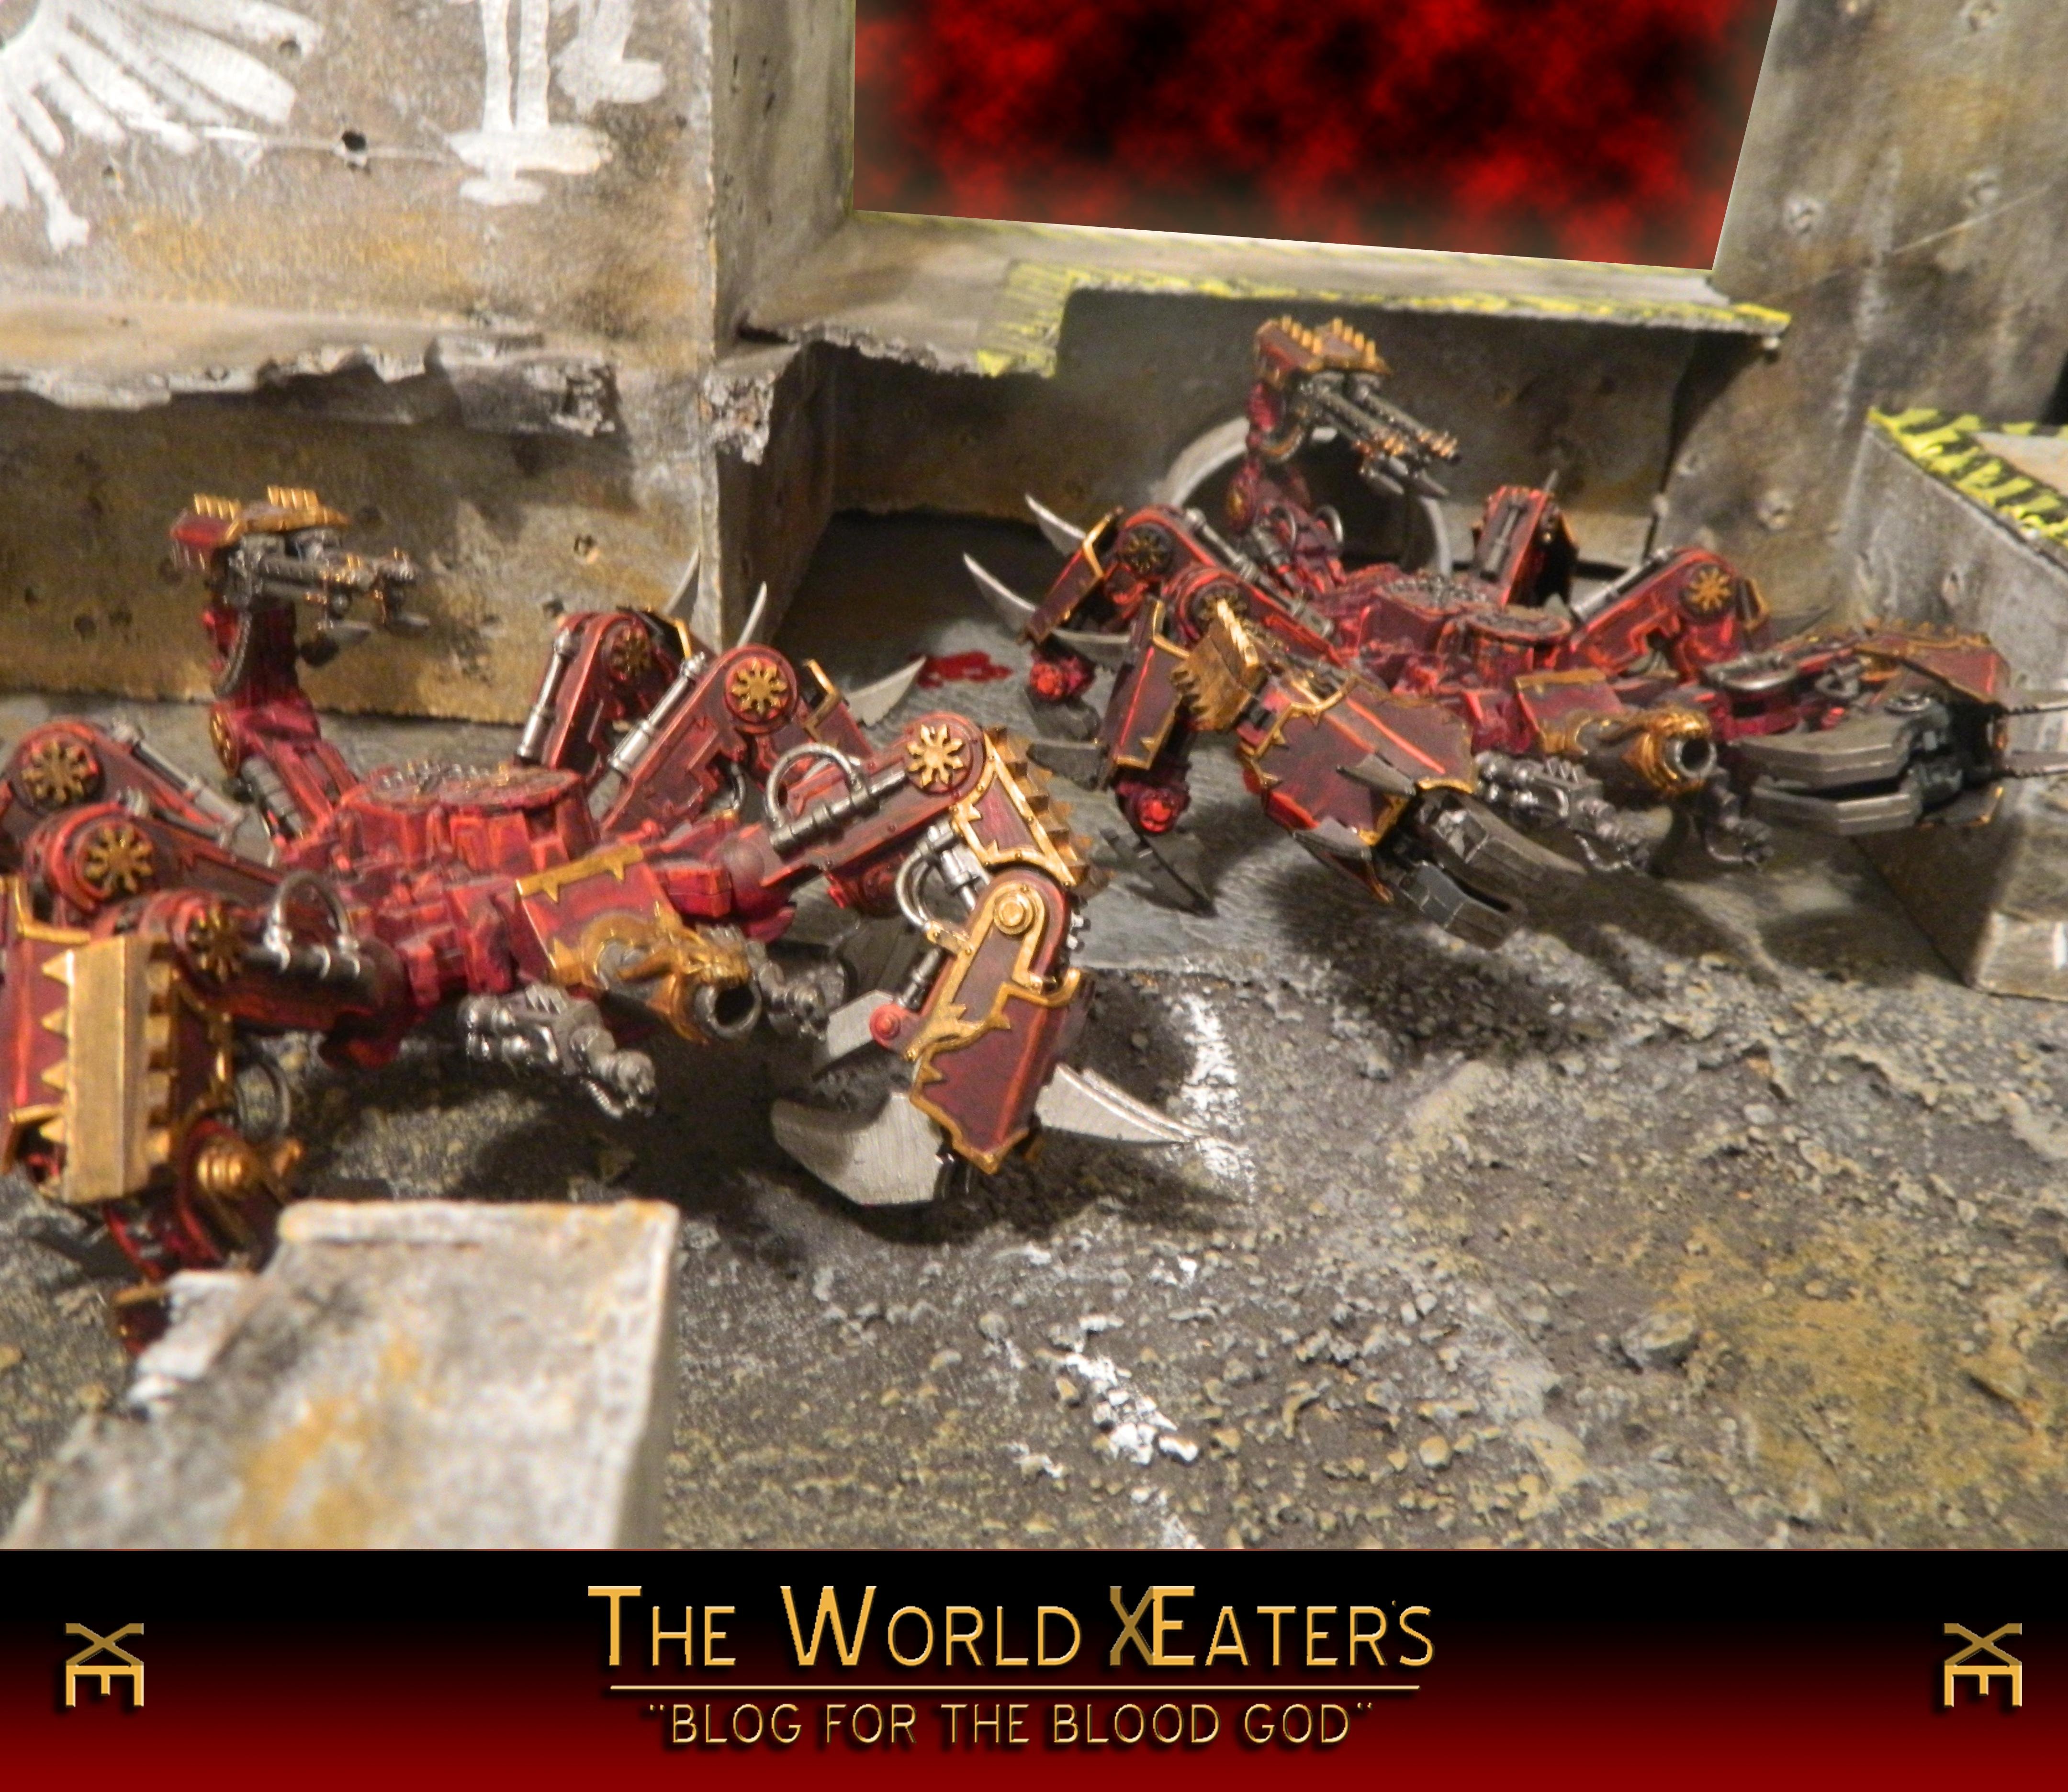 1 Tags Don't Go In The Description, 2 Let Me Help You With That, 3 You're Welcome, Anggrath, Angron, Army, Berserkers, Blood, Bloodcrushers, Bloodletters, Bloodthirster, Chaos, Chosen, Cultists, Daemon Prince, Daemons, Defiler, Forge World, Helbrute, Heldrake, Herald, Kharne, Khorne, Land Raider, Maulerfiend, Obliterators, Predator, Rhino, Skarbrand, Skull, Space Marines, Terminator Armor, Vindecator, World Eaters